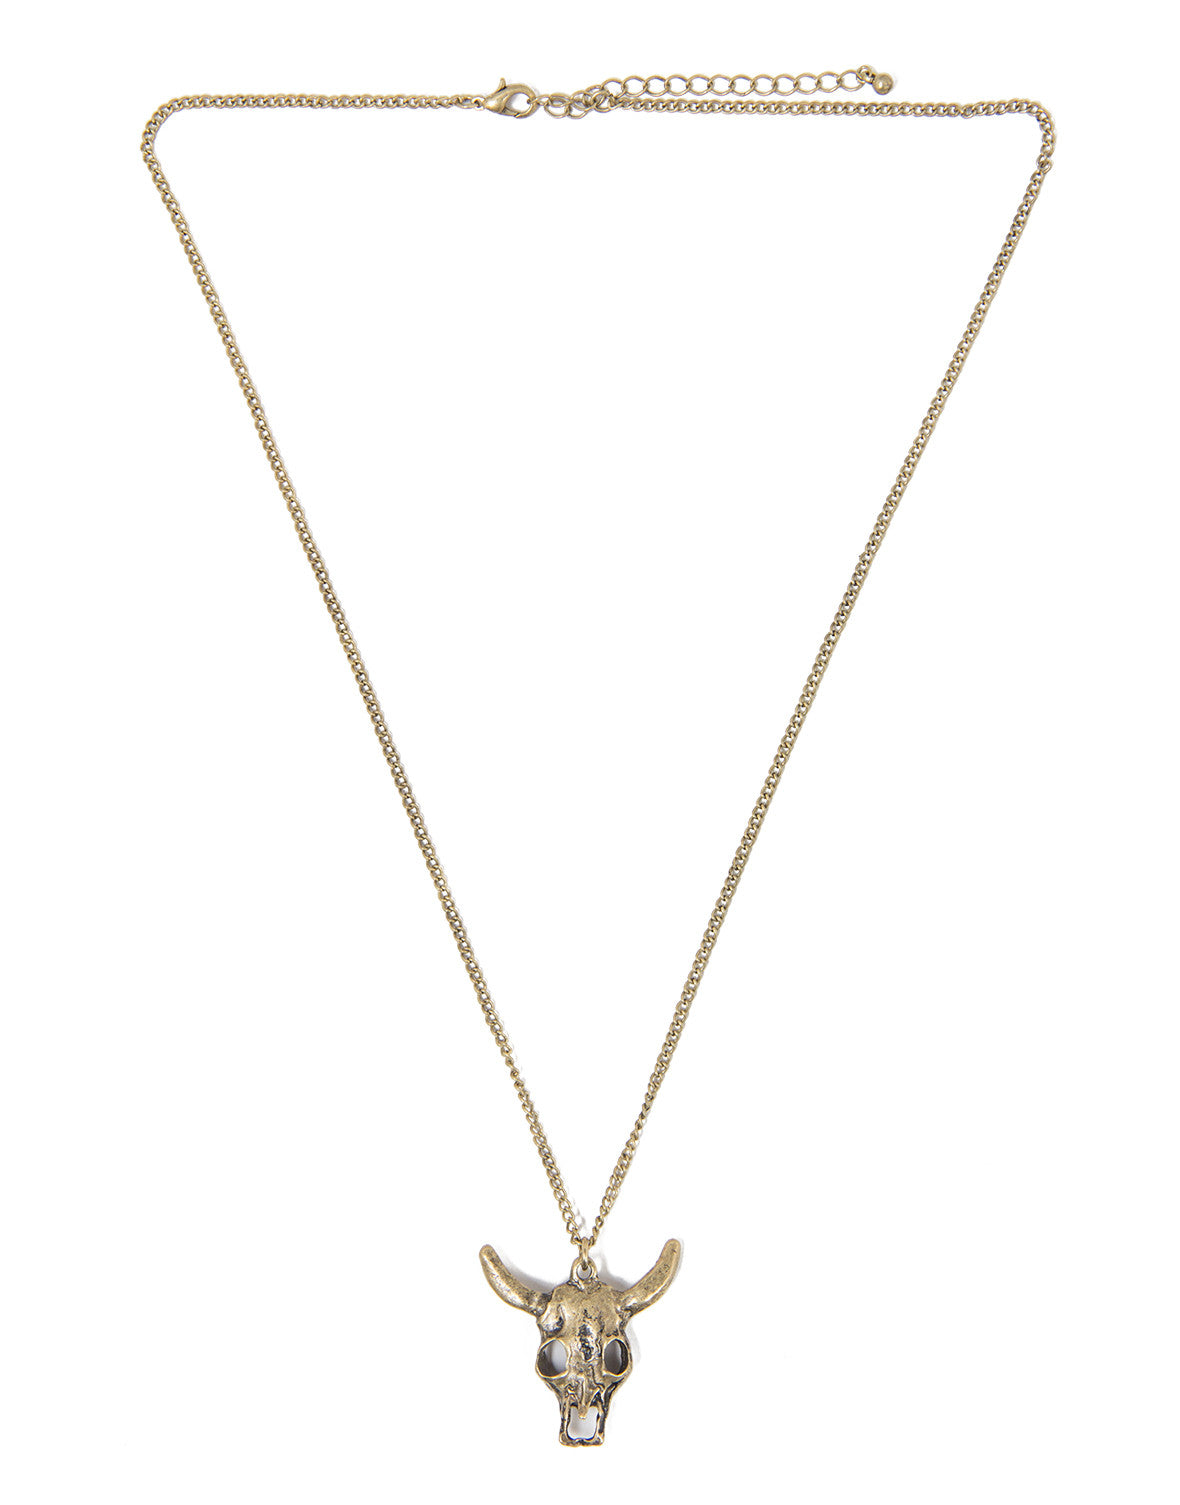 Longhorn Necklace - Antique Gold